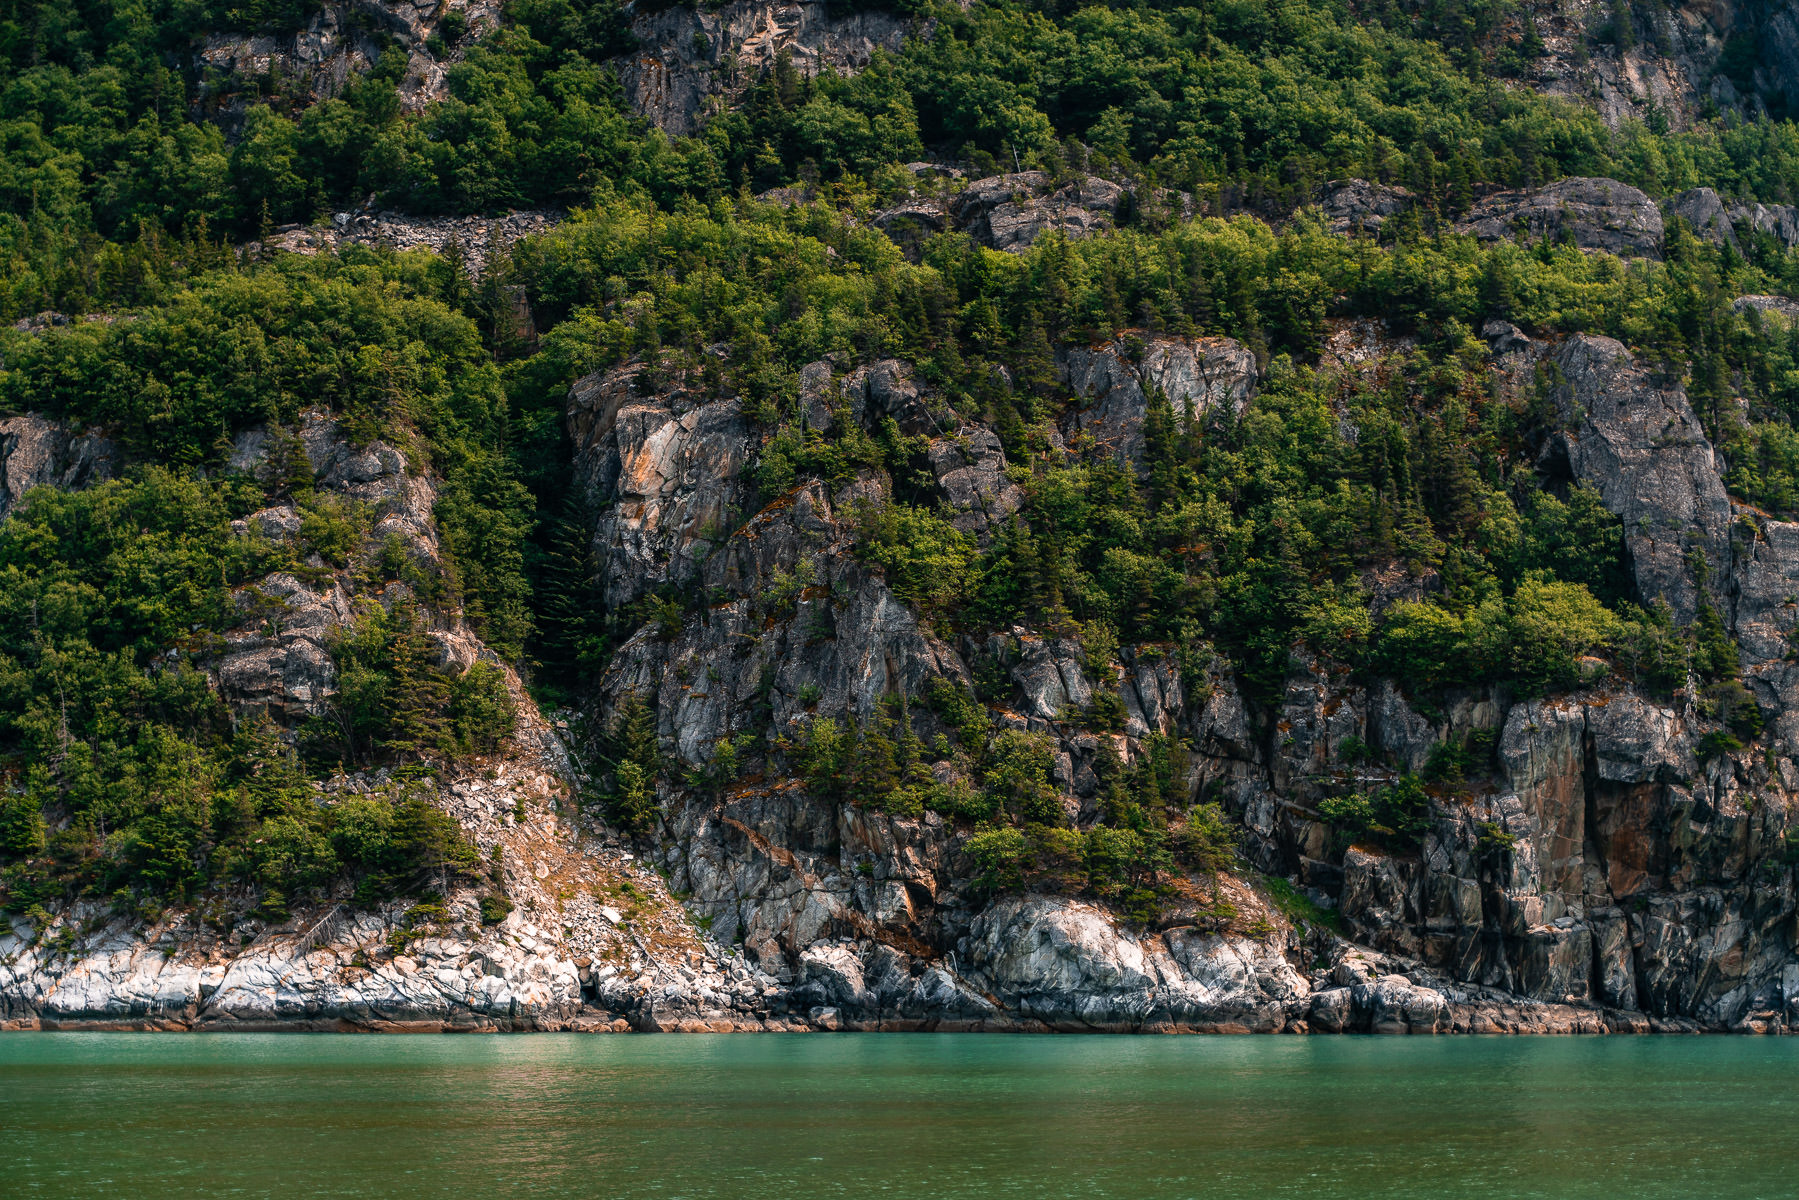 Trees grow along the cliff walls of Alaska's Taiya Inlet near Skagway.